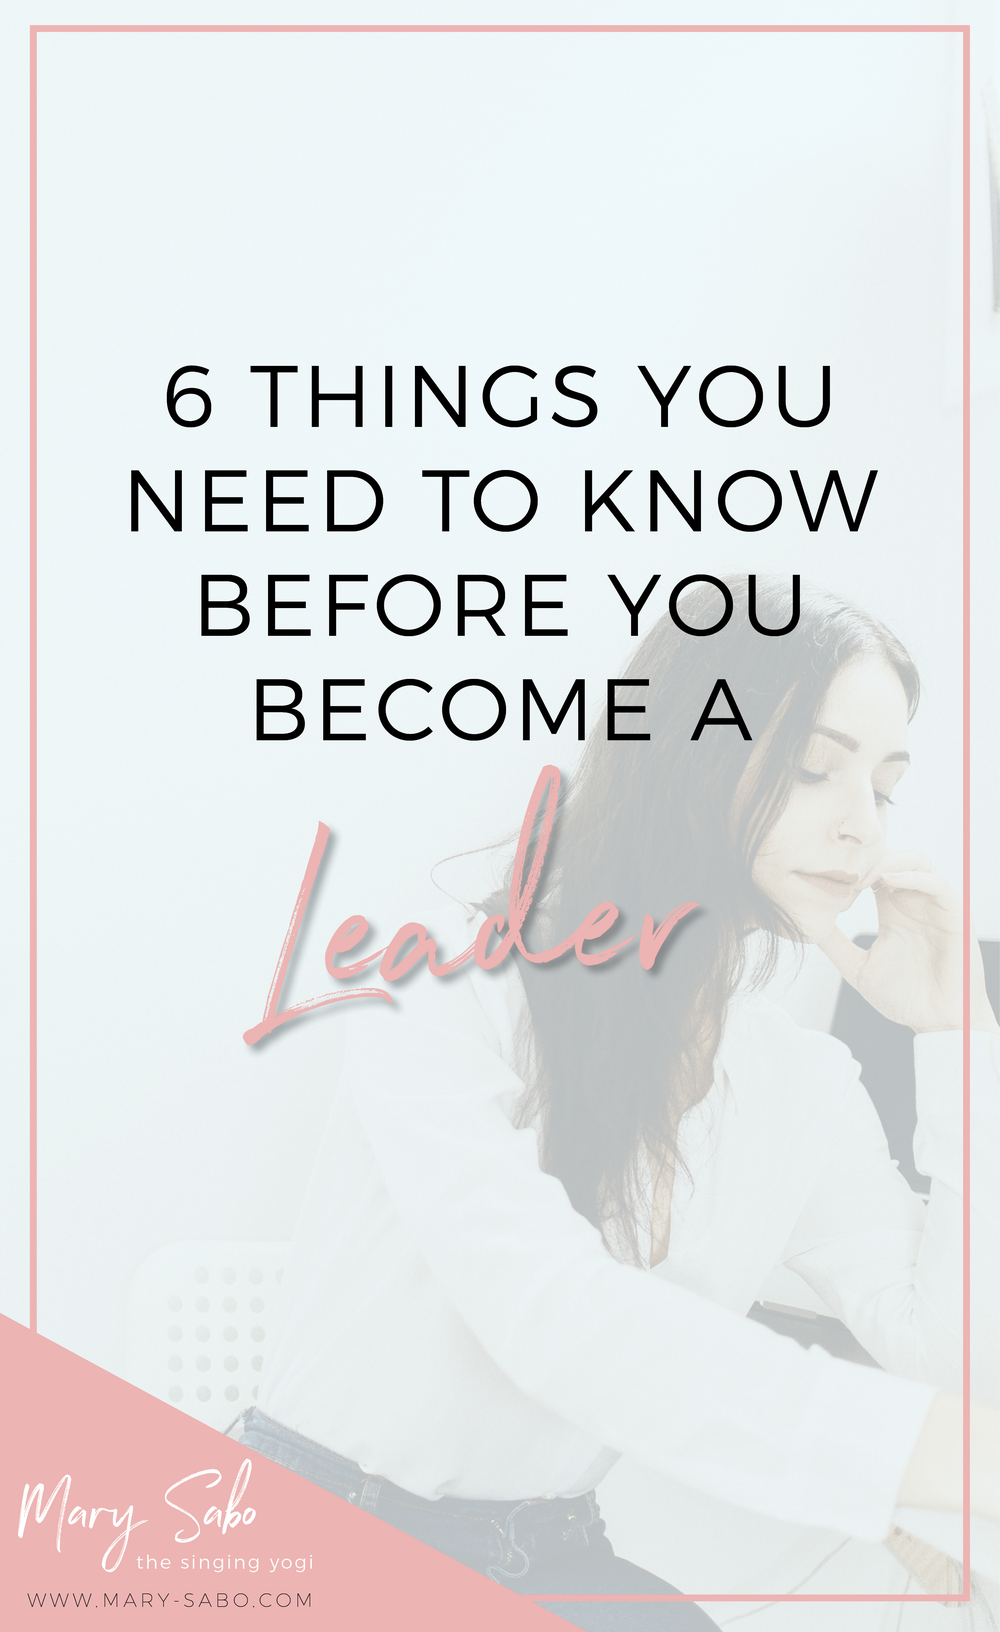 6 Things You Need to Know Before You Become a Leader.png